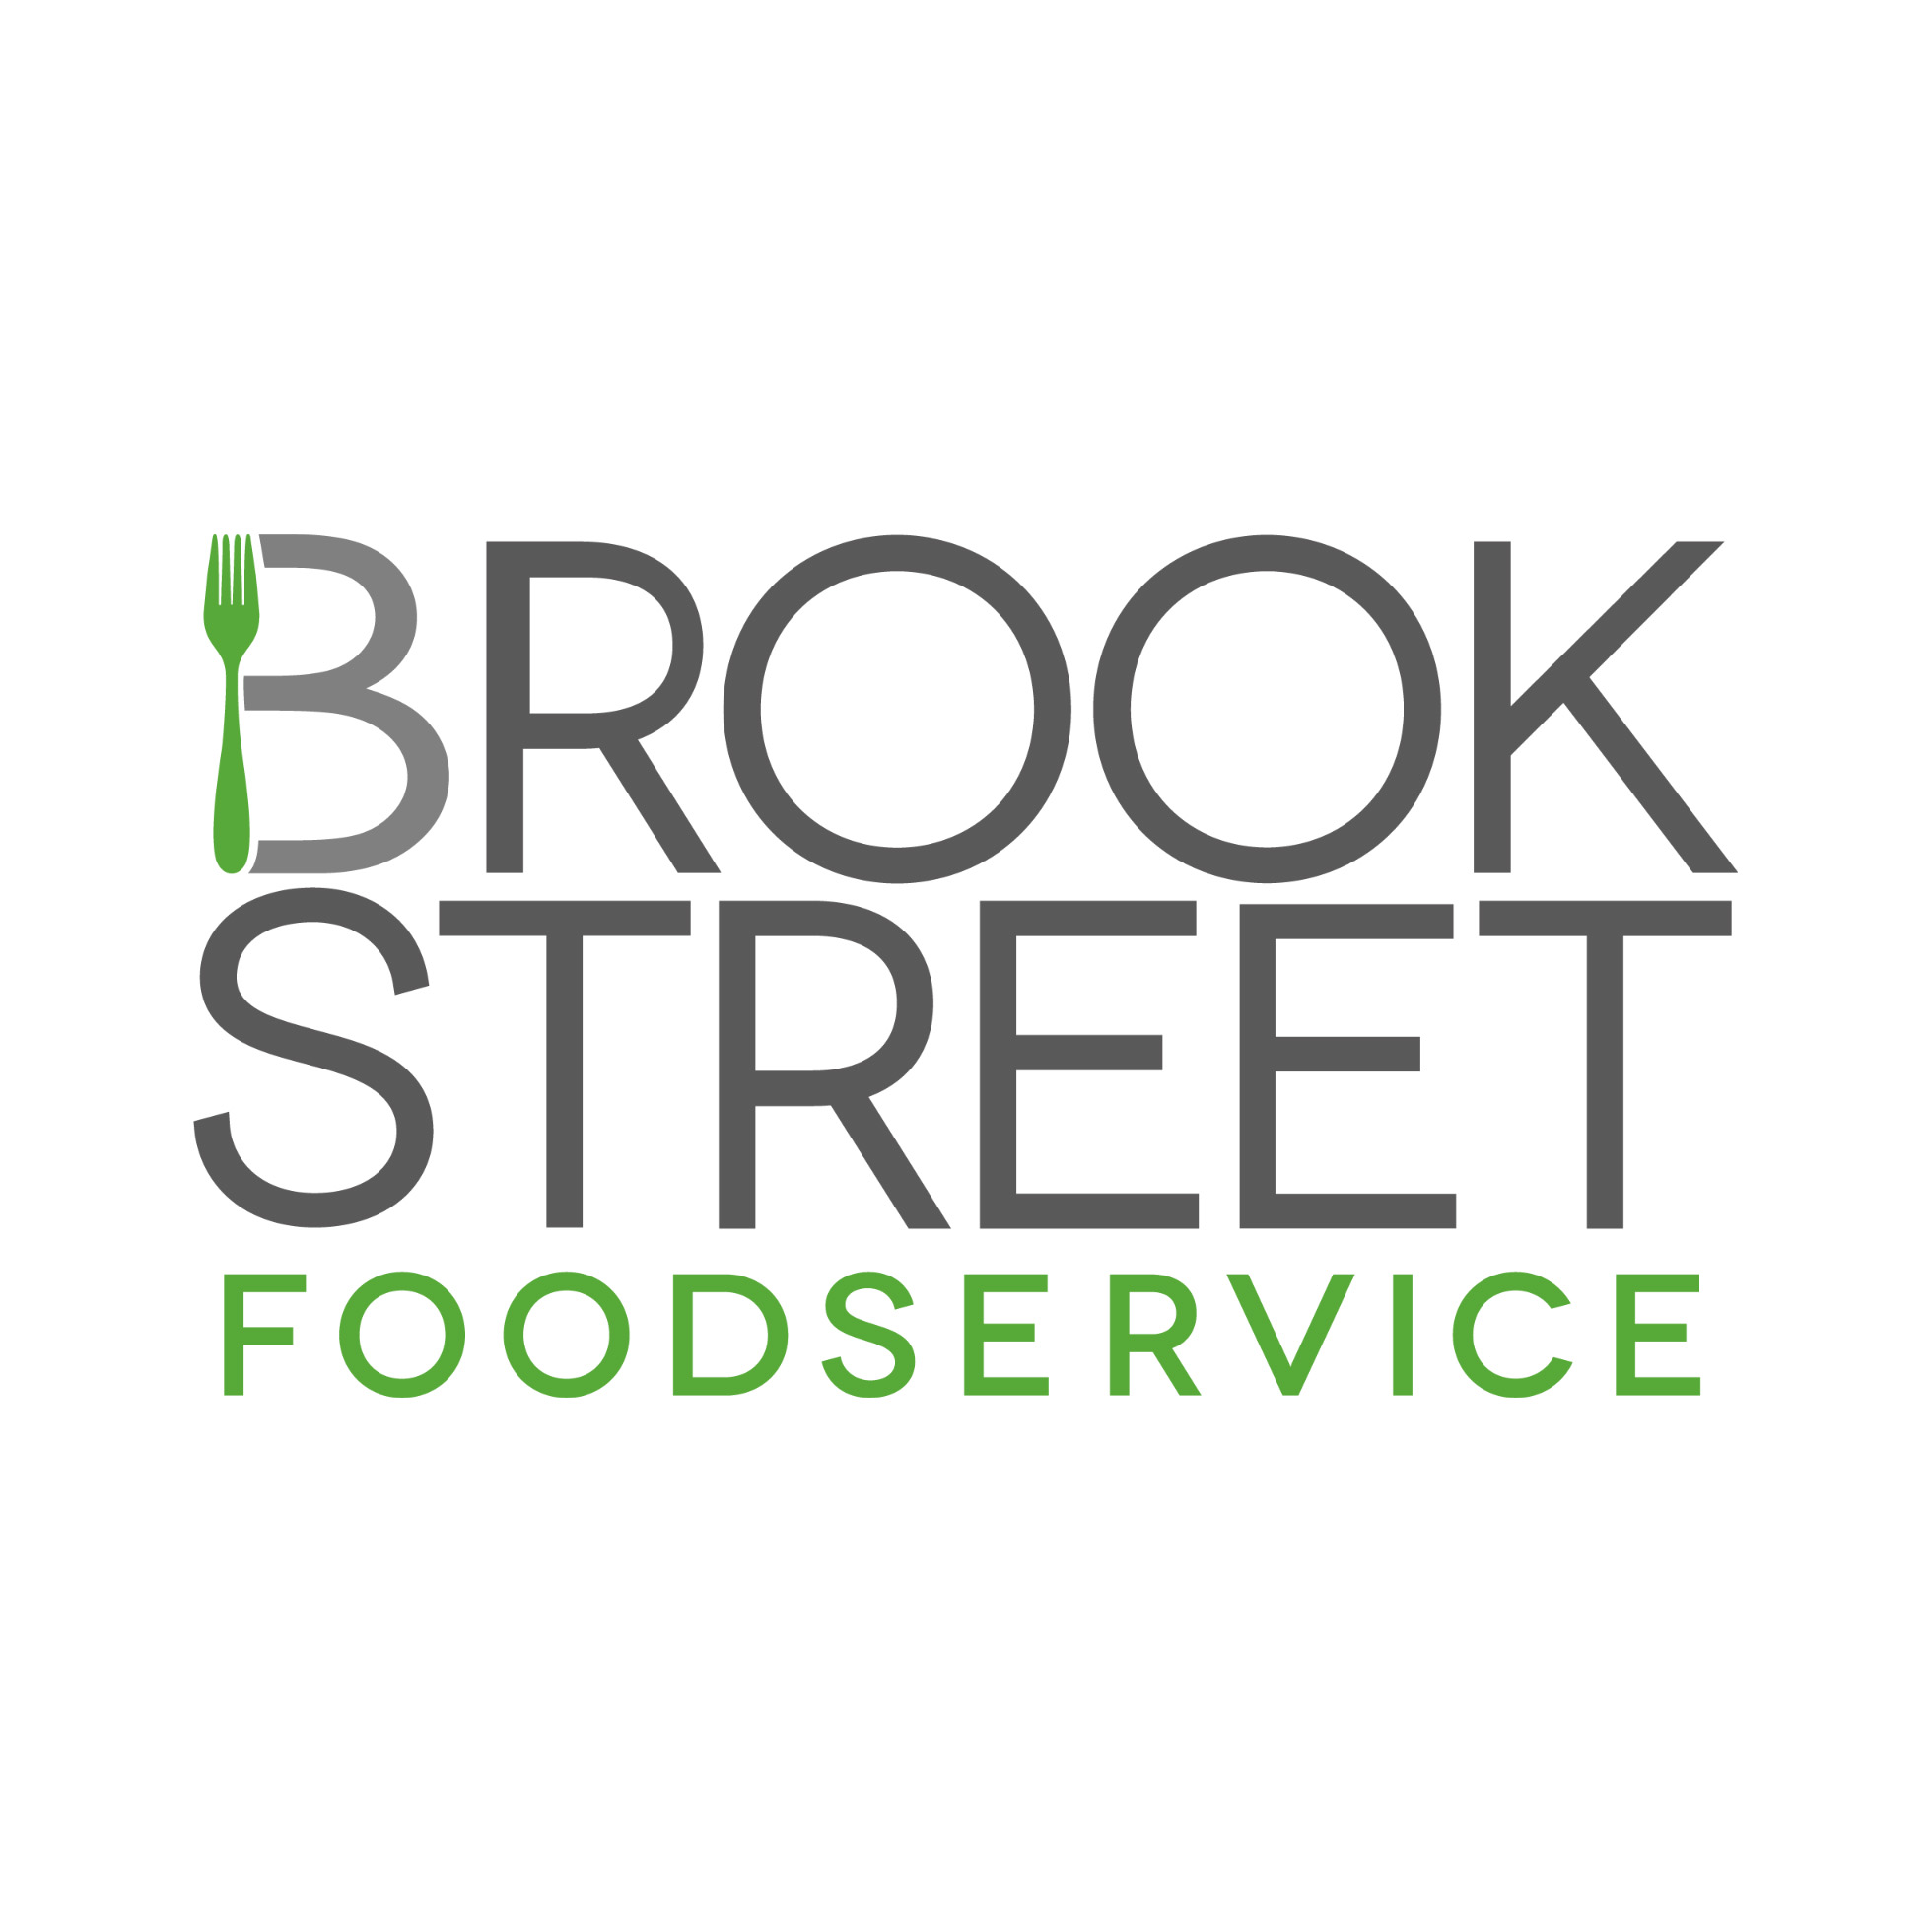 Brook Street Food Service